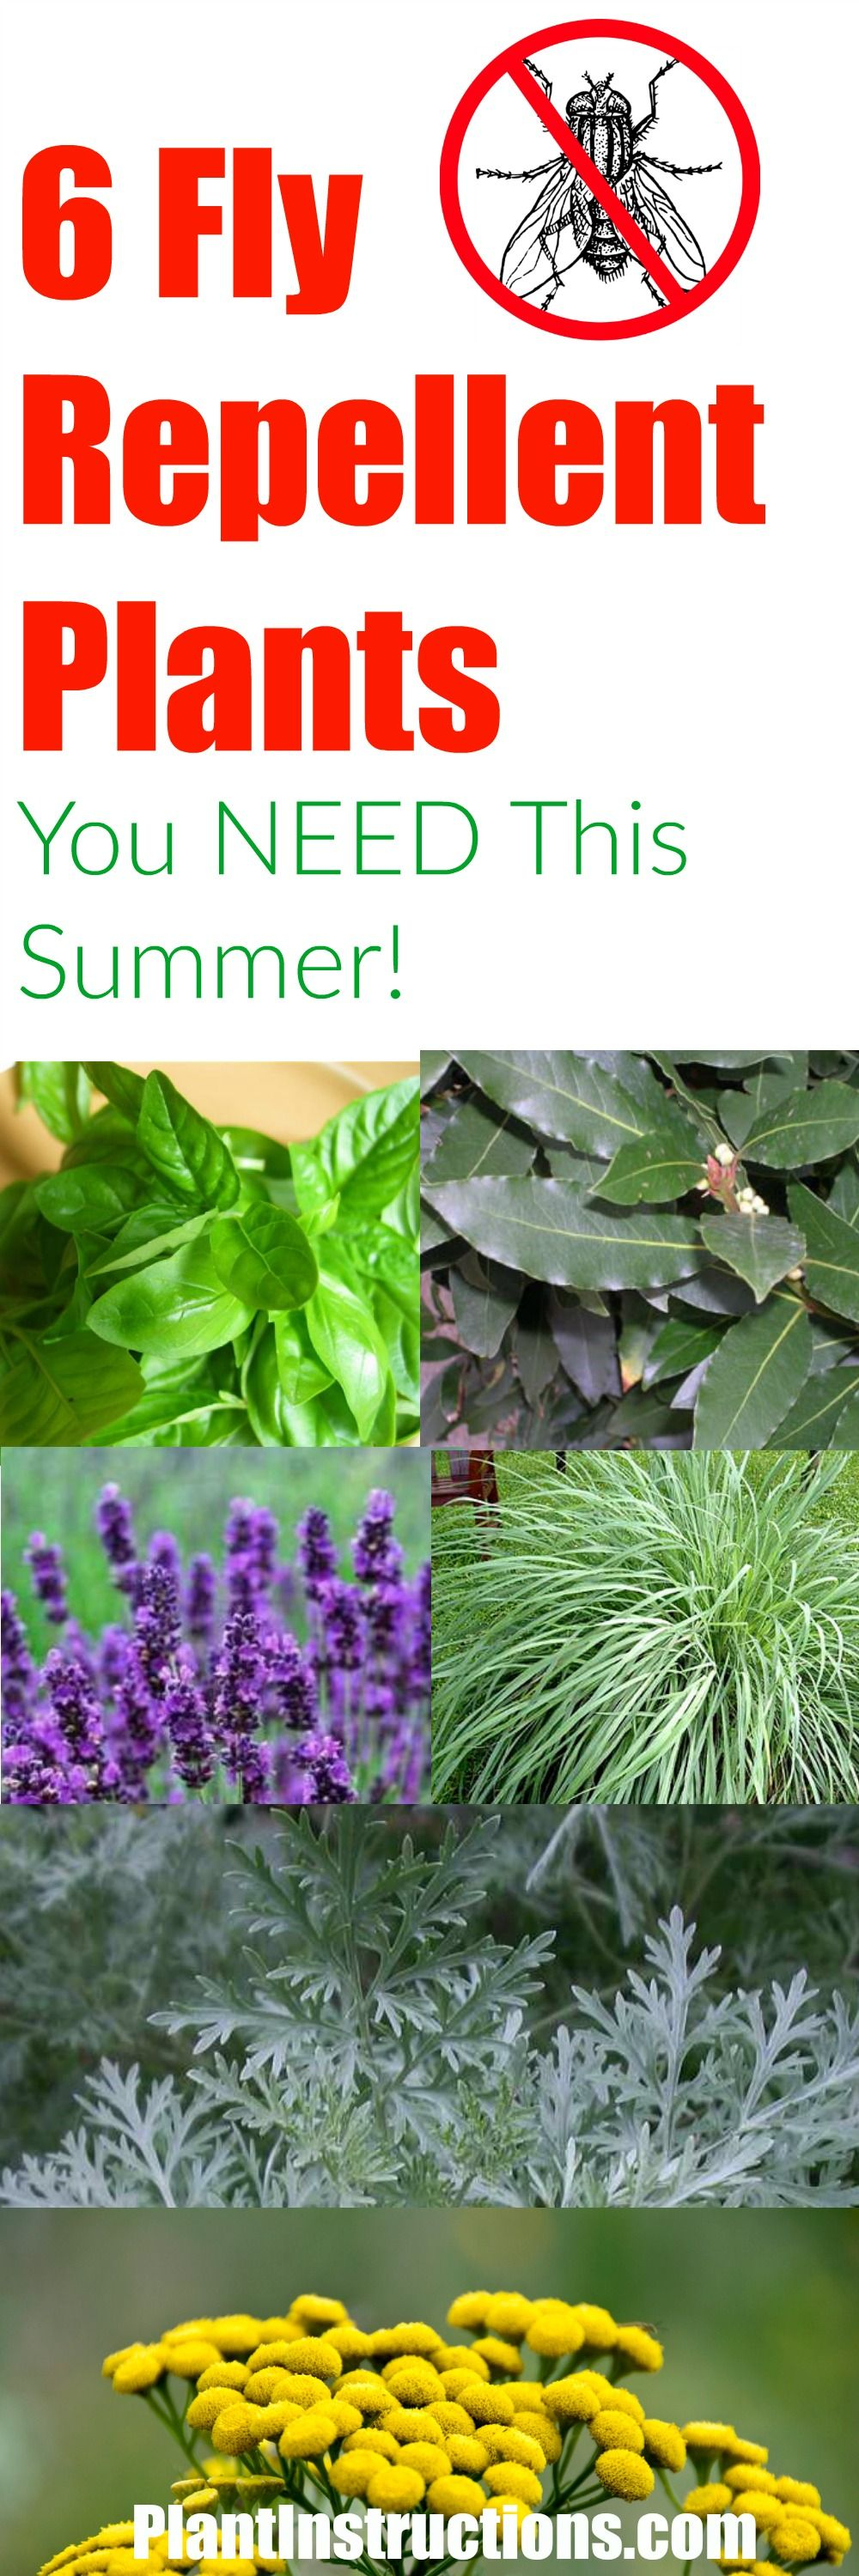 6 fly repellent plants you should have around your home plants flowers fly repellant. Black Bedroom Furniture Sets. Home Design Ideas